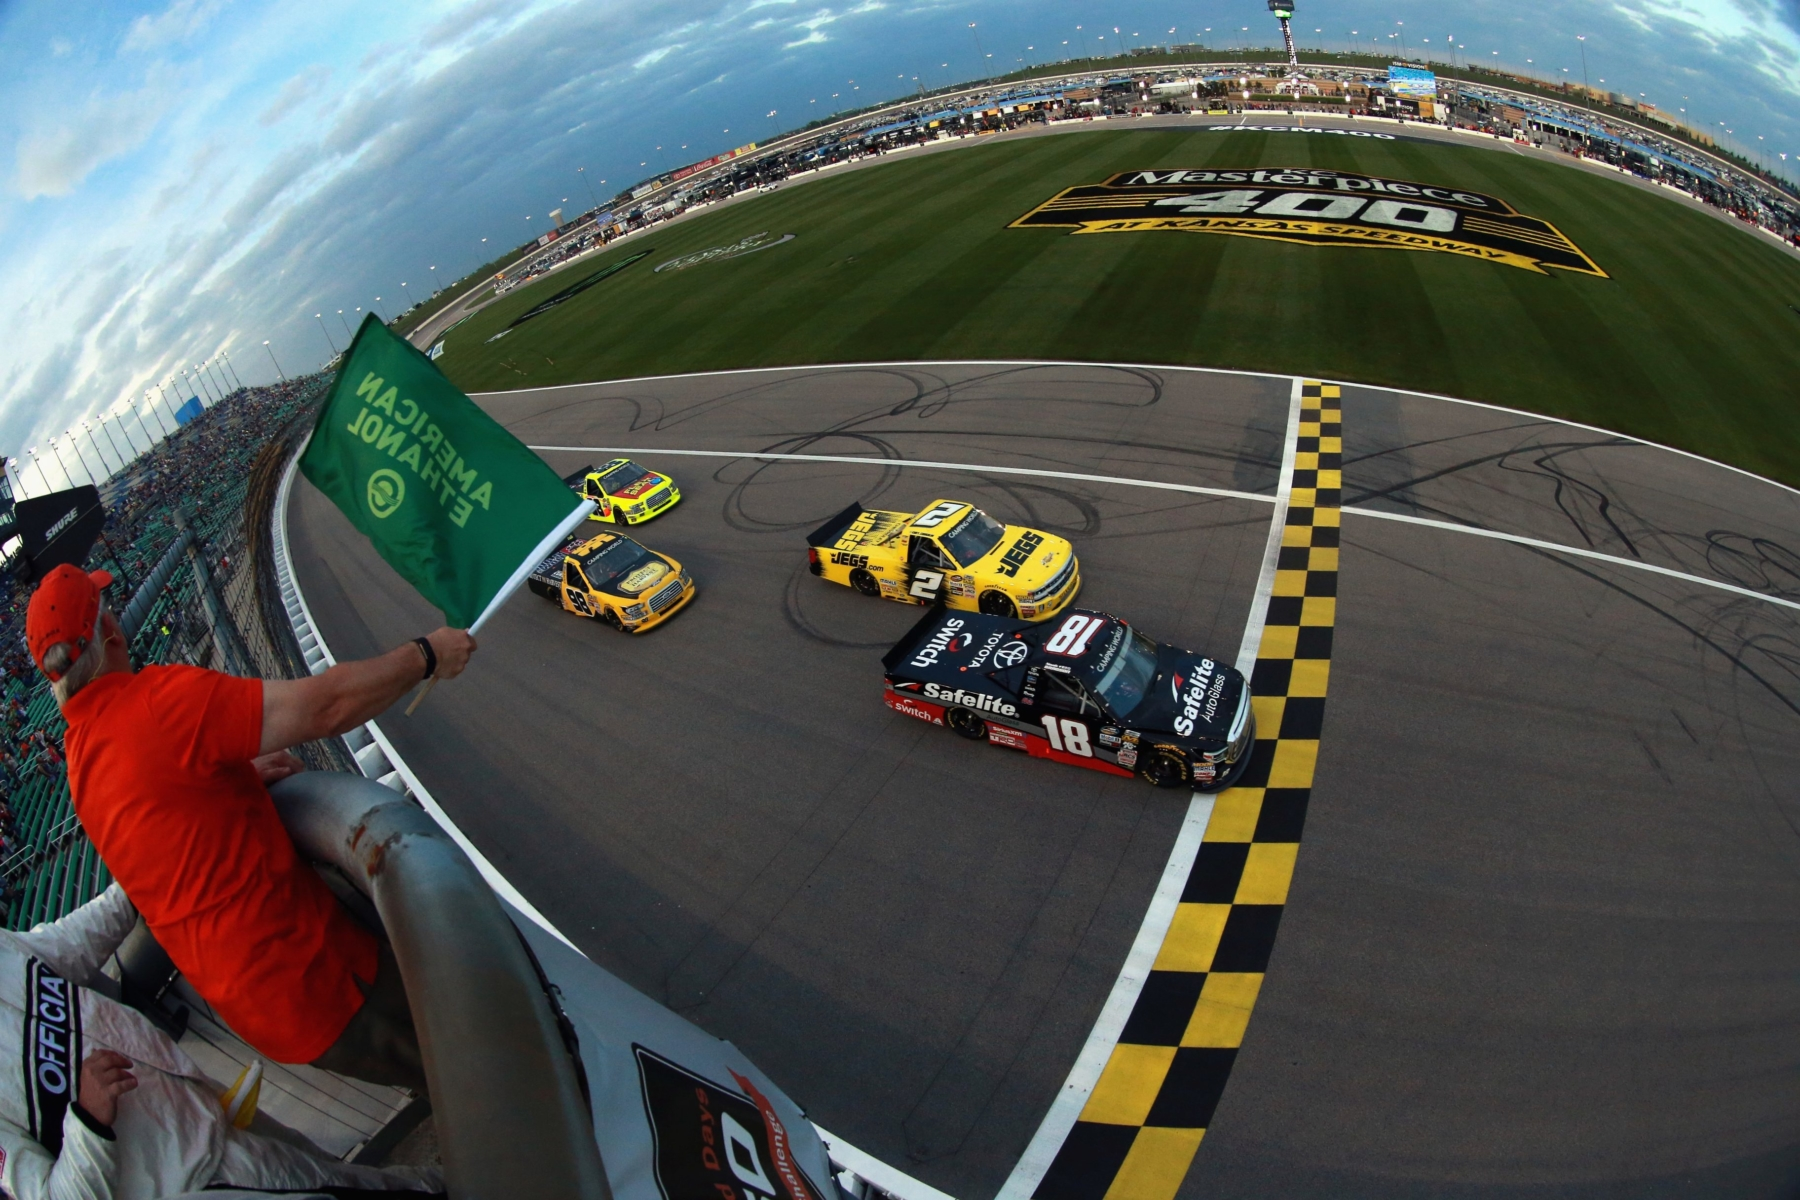 The NASCAR Truck Series at Kansas Speedway